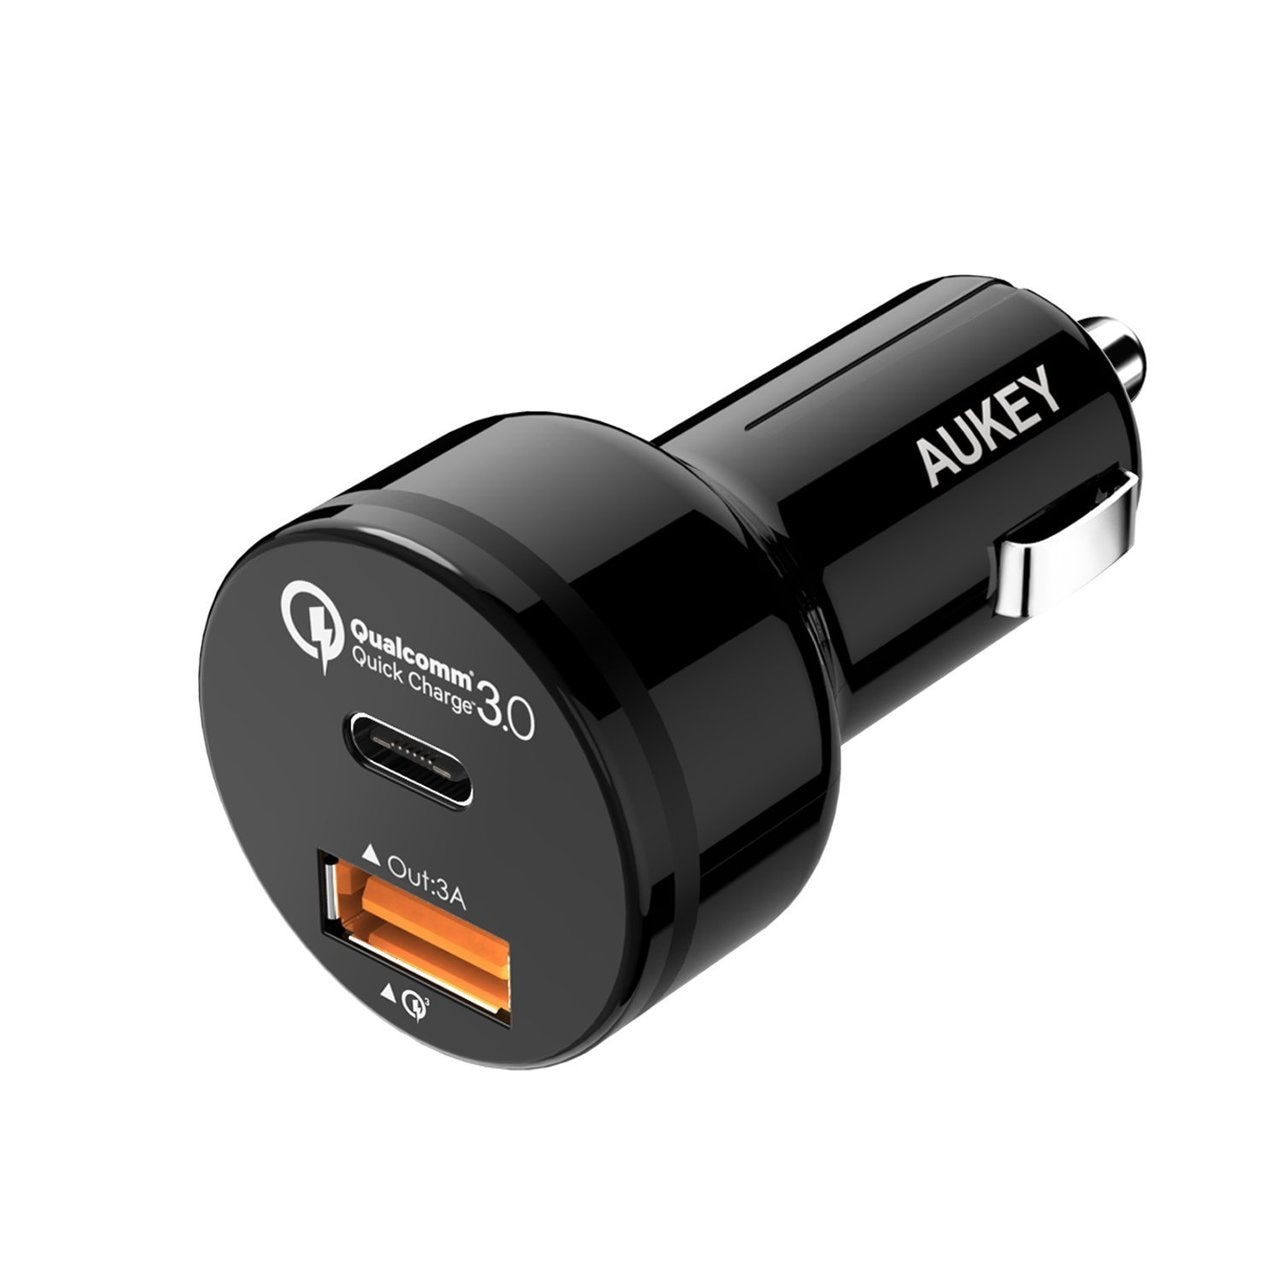 AUKEY 2-Port 33W Turbo USB-C Car Charger with QC 3.0 - Black - CC-Y1